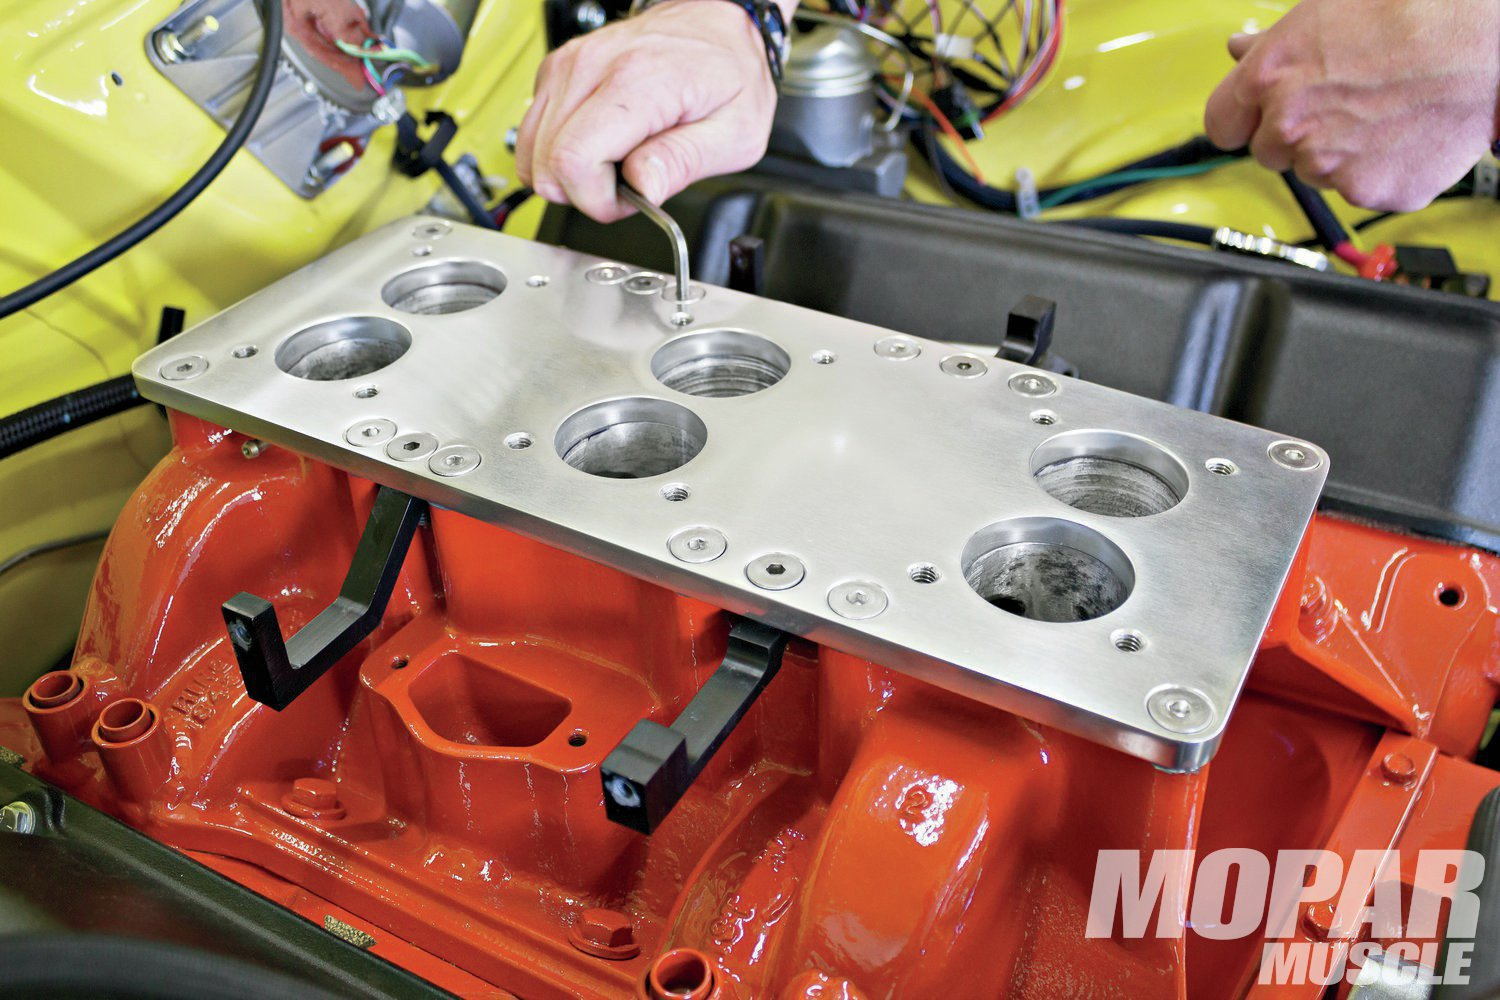 02 Because the throttle bodies' bolt pattern is smaller than the original Holley carbs, a spacer (also polished billet aluminum) is needed to provide the proper mounting pattern. It also provides a place to attach the fuel rail mounts.